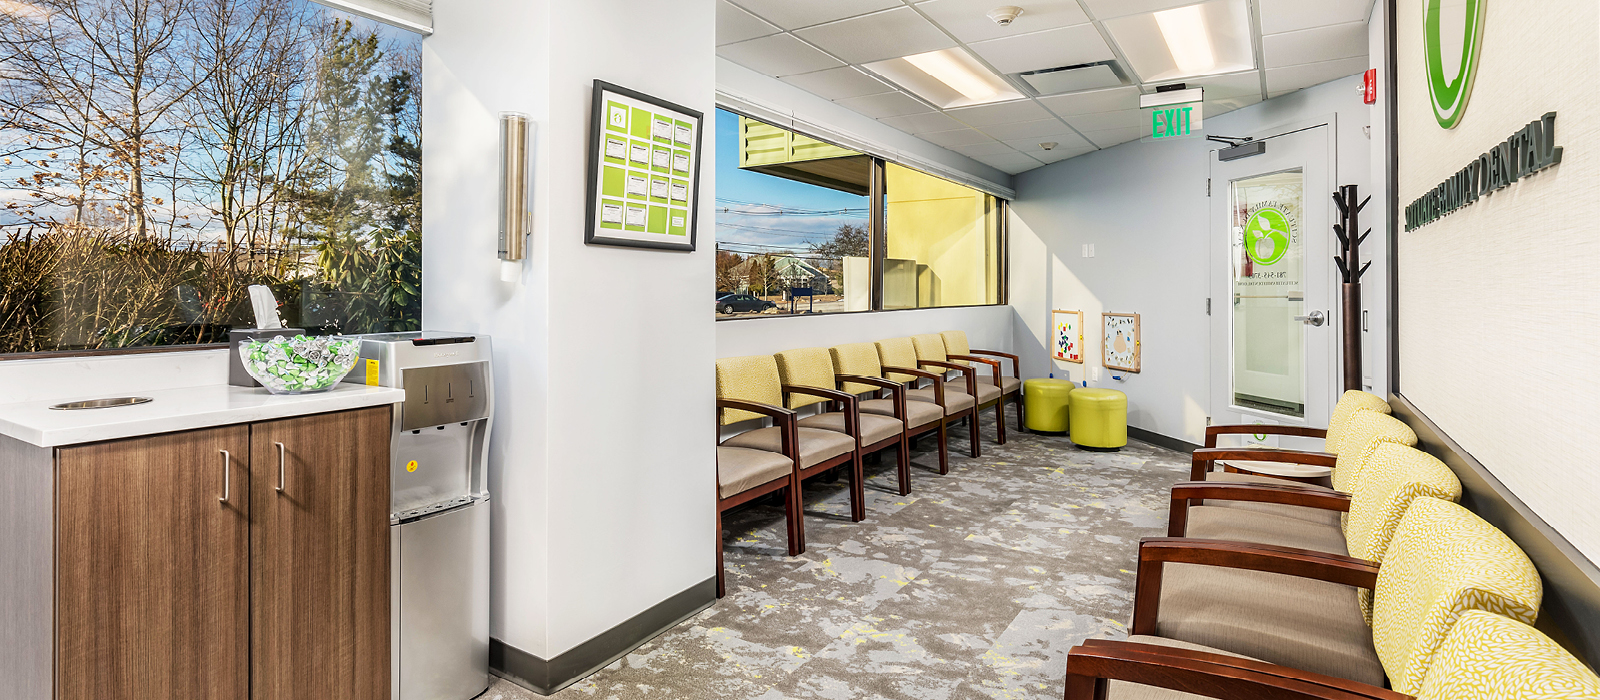 Scituate Family Dental patient waiting area